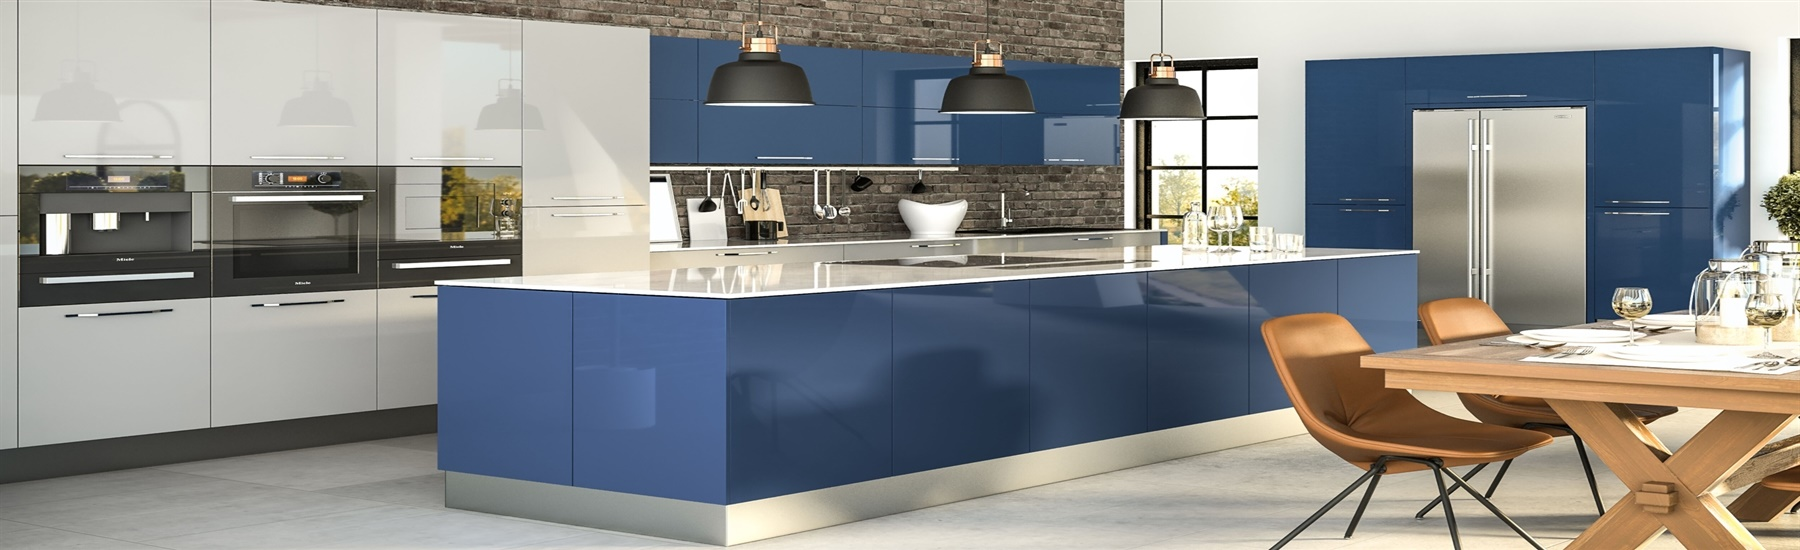 Baltic_Blue_and_Grey_Kitchen